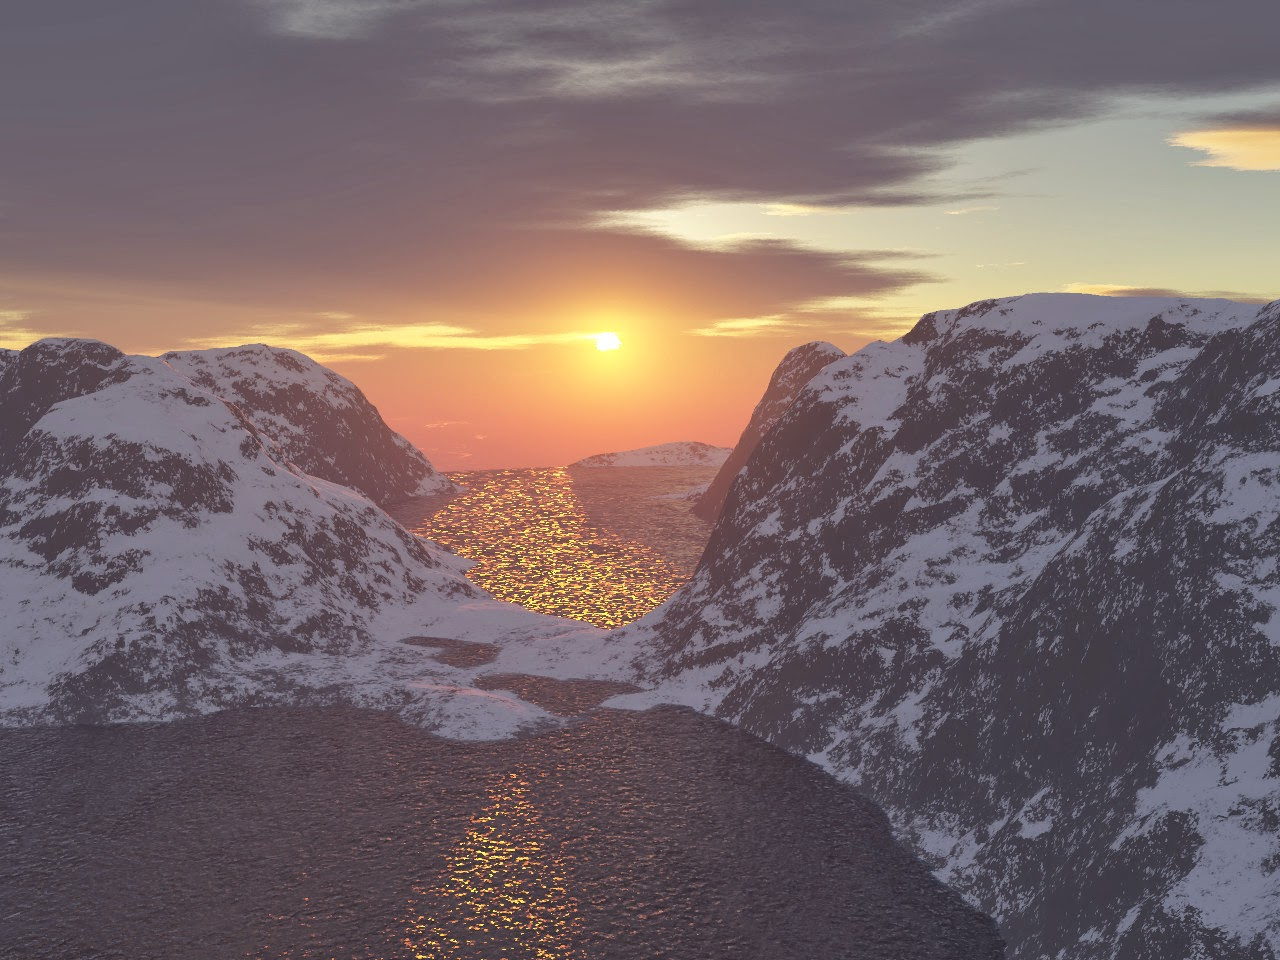 Snowy-Mountain-Sunset-beautiful-nature-images-wallpapers